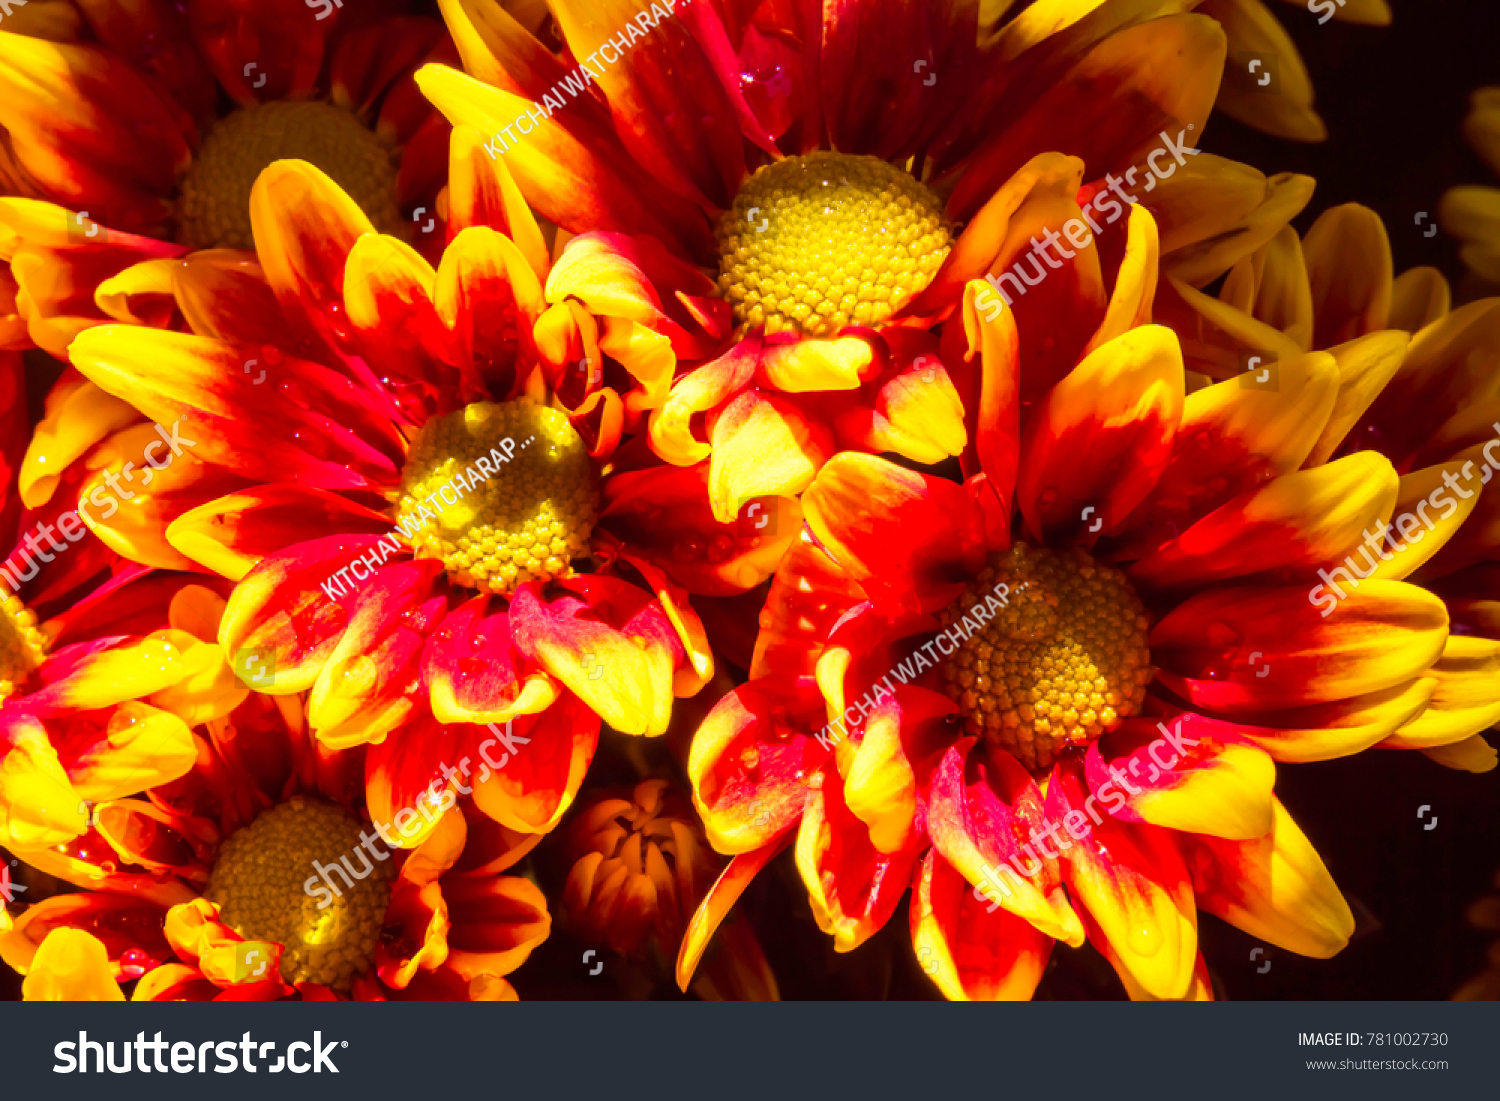 Chrysanthemum Two Tone Red Yellow Flowers Stock Photo Download Now